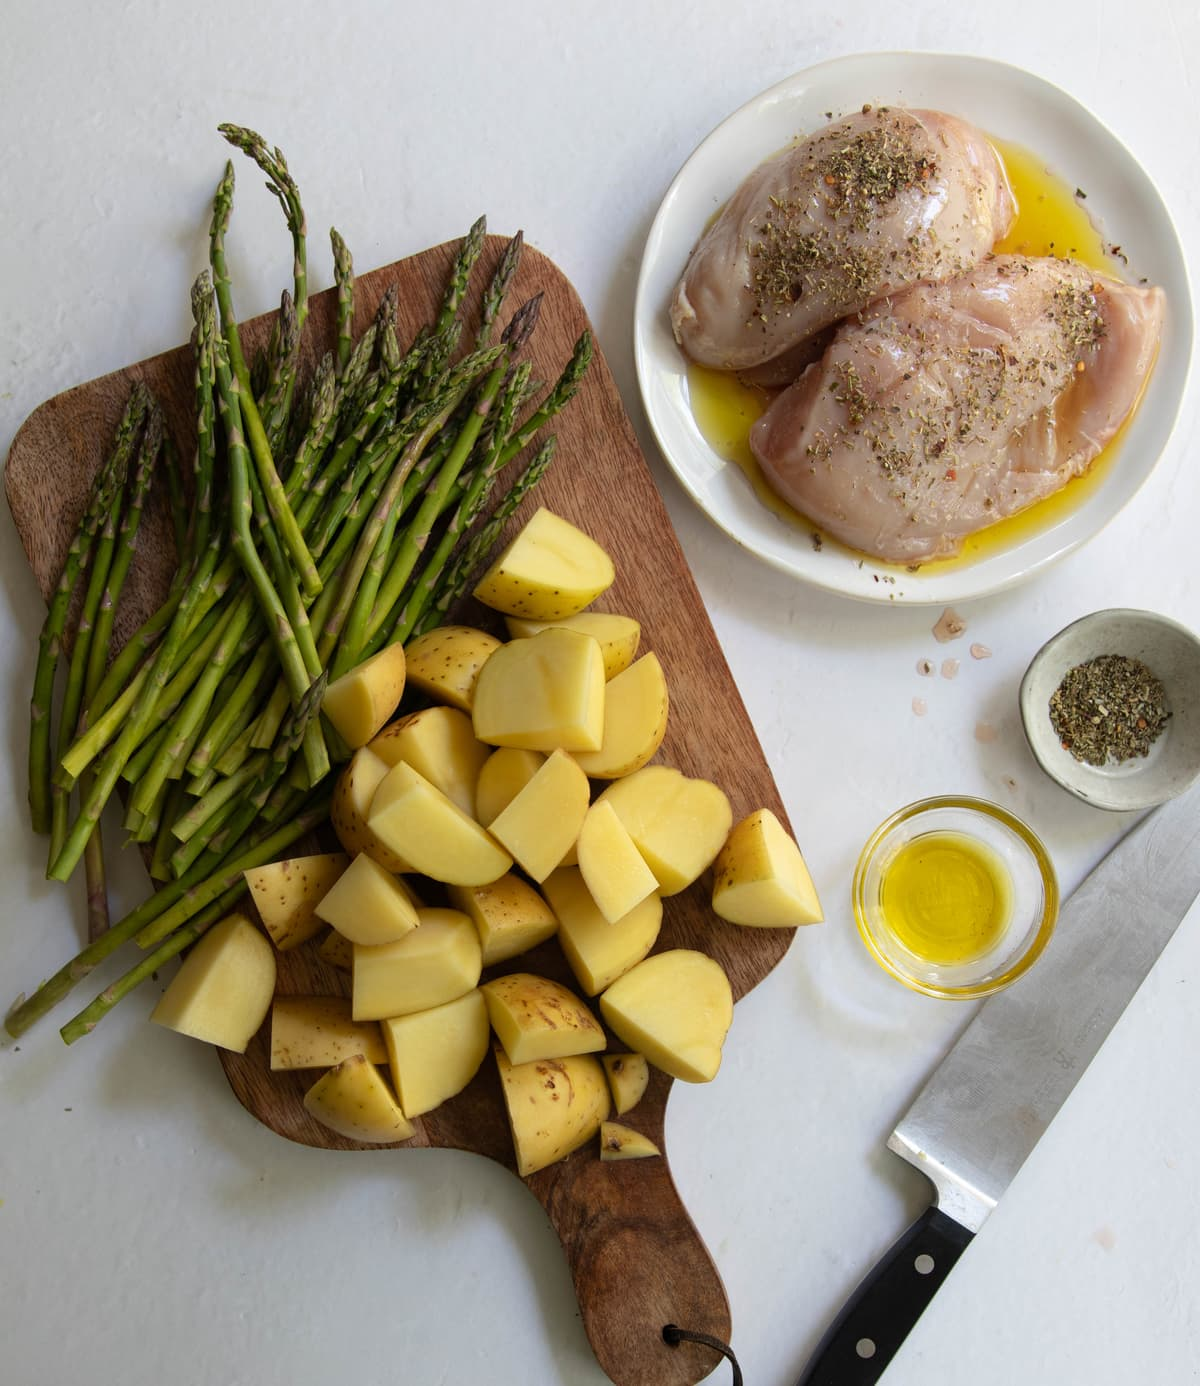 Chicken breasts marinating on a plate beside a cutting board with chopped potatoes and asparagus.